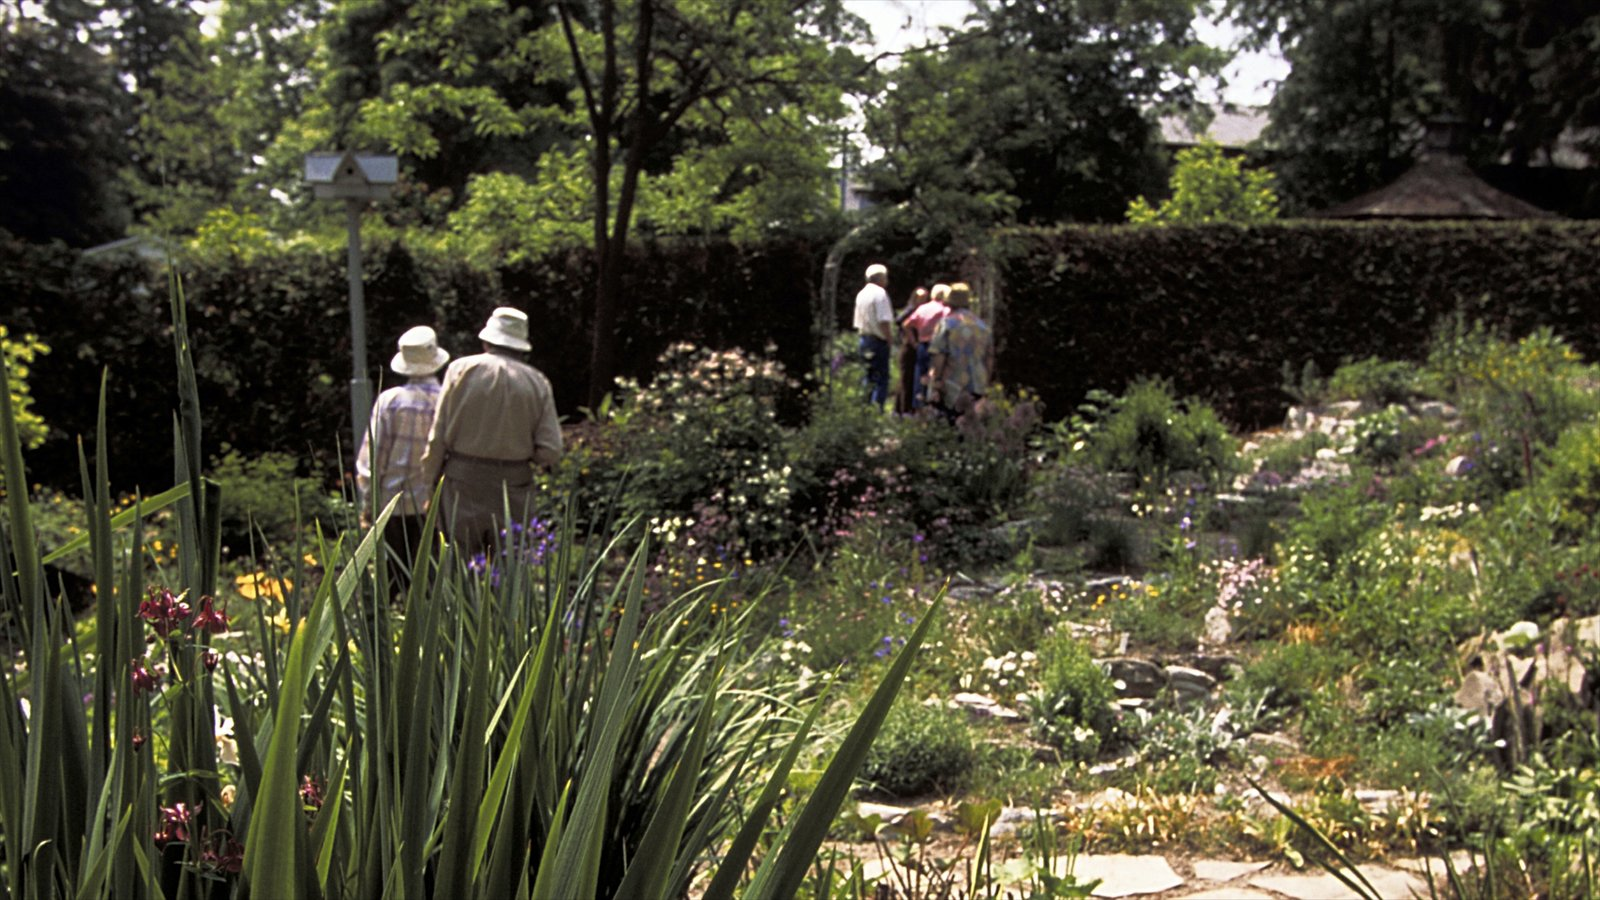 Unionville showing flowers and a garden as well as a small group of people